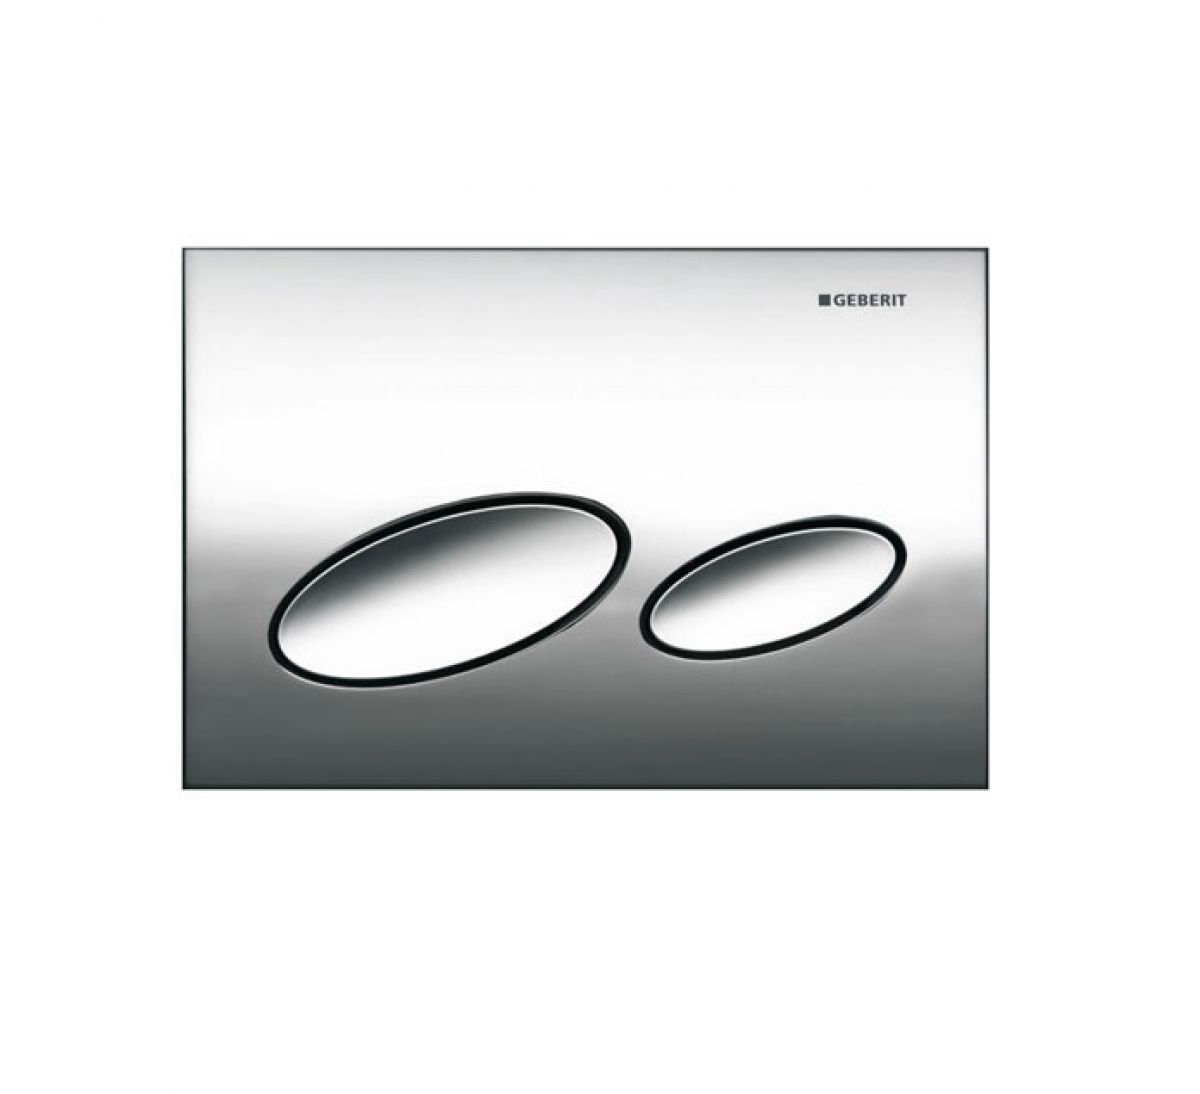 Geberit kappa 20 dual flush plate uk bathrooms for Geberit flush